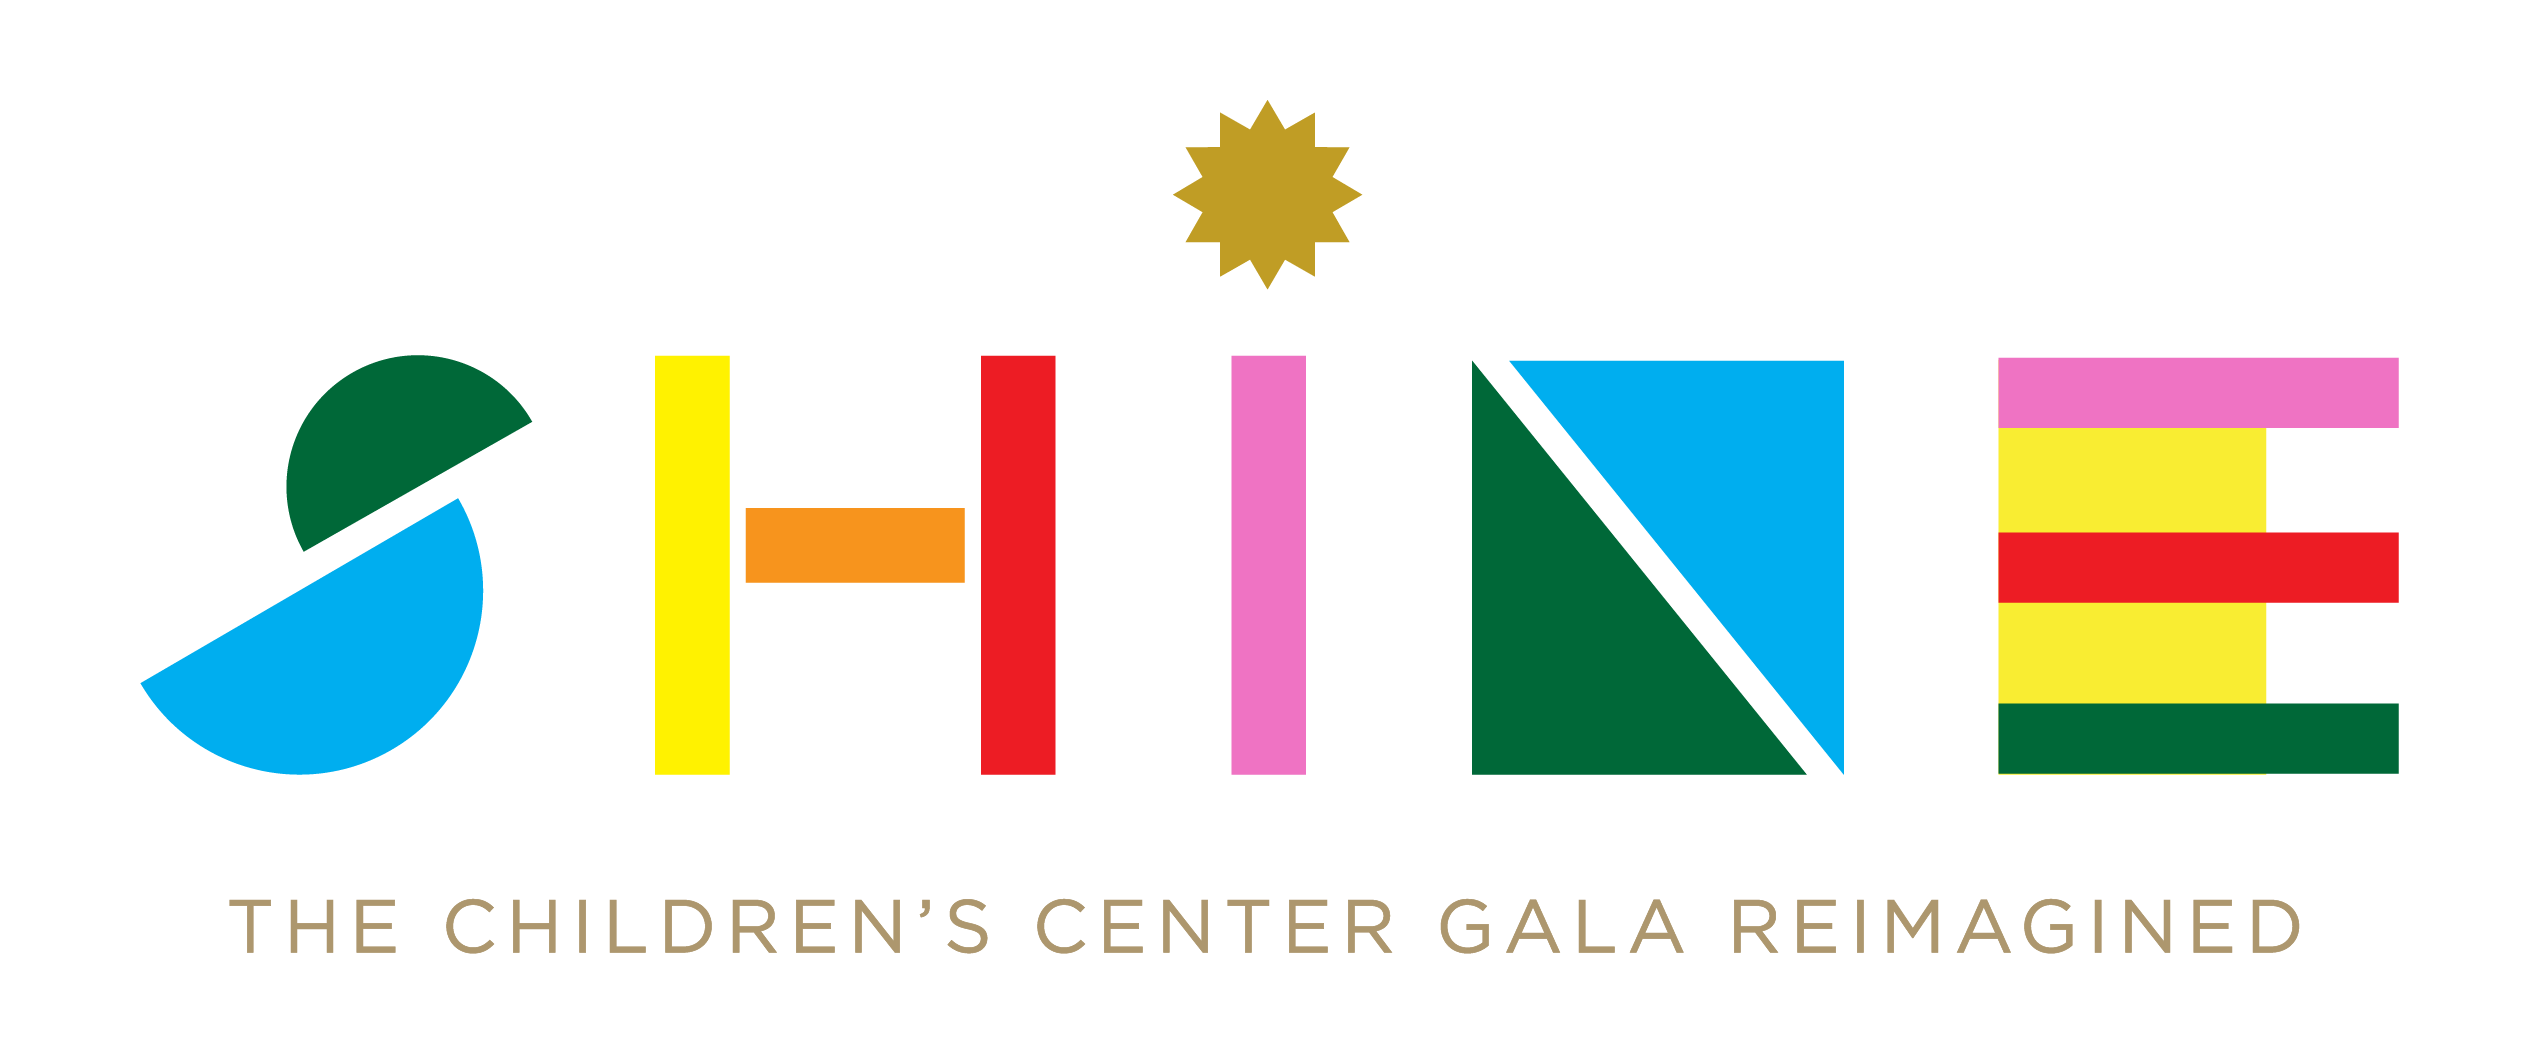 SHINEGala StrippedElements logo